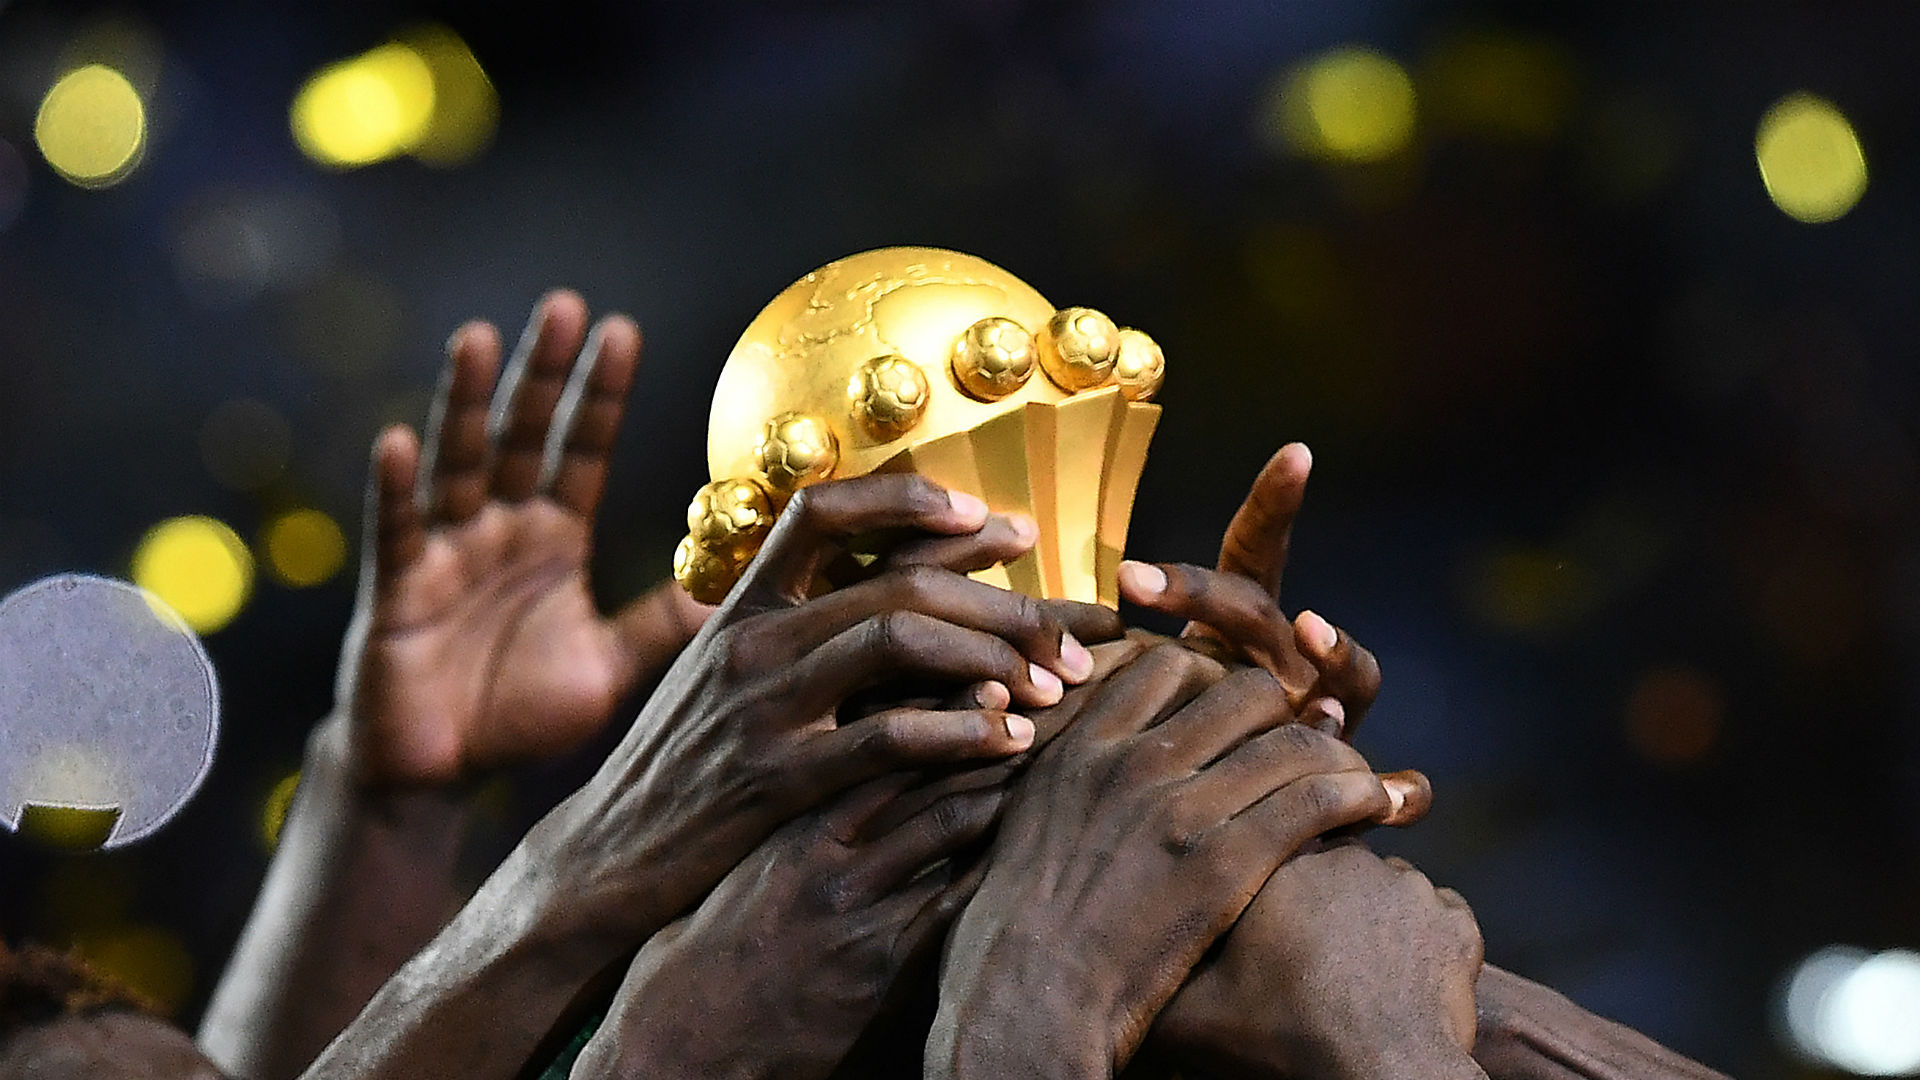 AFCON 2019: Cameroon to face Ghana, Morocco draw South Africa and Ivory Coast